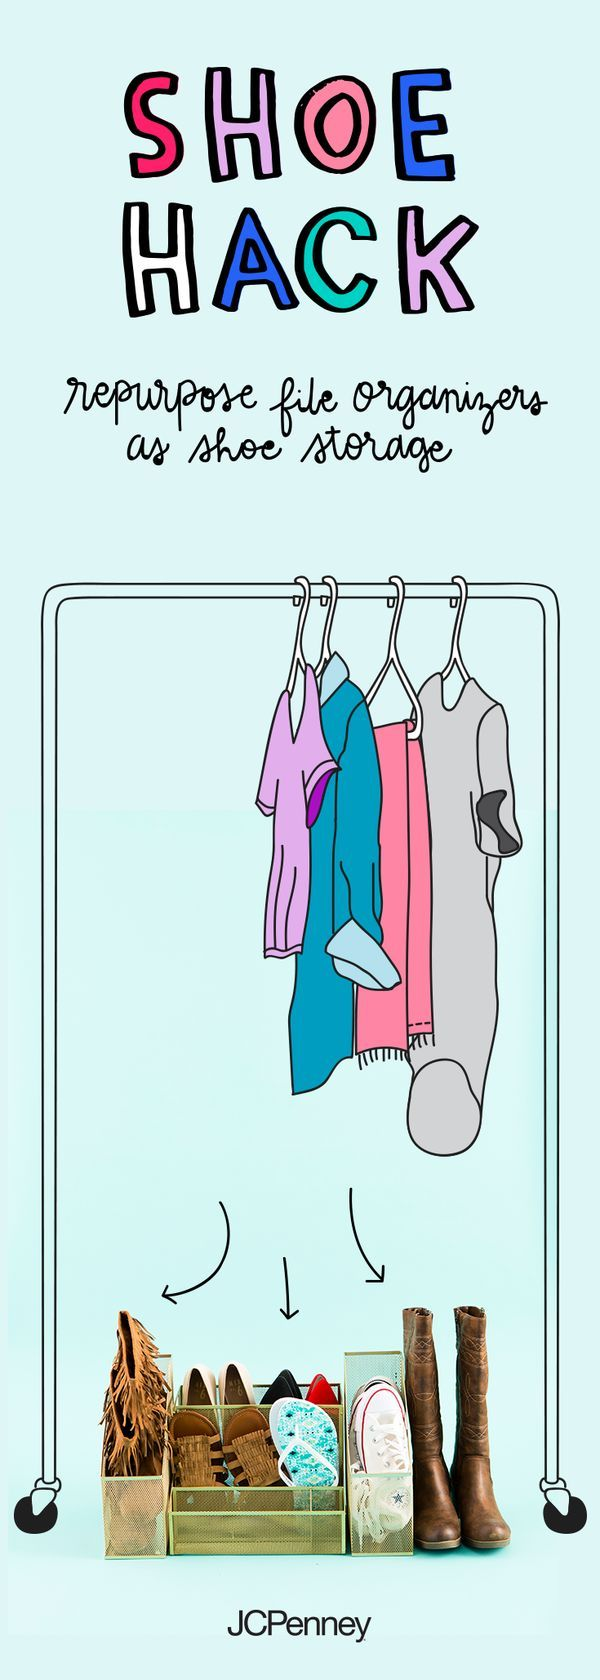 Give that messy closet the boot! Help her stay organized this school year with this easy shoe rack DIY. Start by pairing up her shoes by size and season. Then swing by your local JCPenney and grab file organizers in bright, fun colors. Then arrange the shoes for easy to see and grab access. Now that's getting the school year off on the right foot! Click to shop shoes and get started on this life hack.